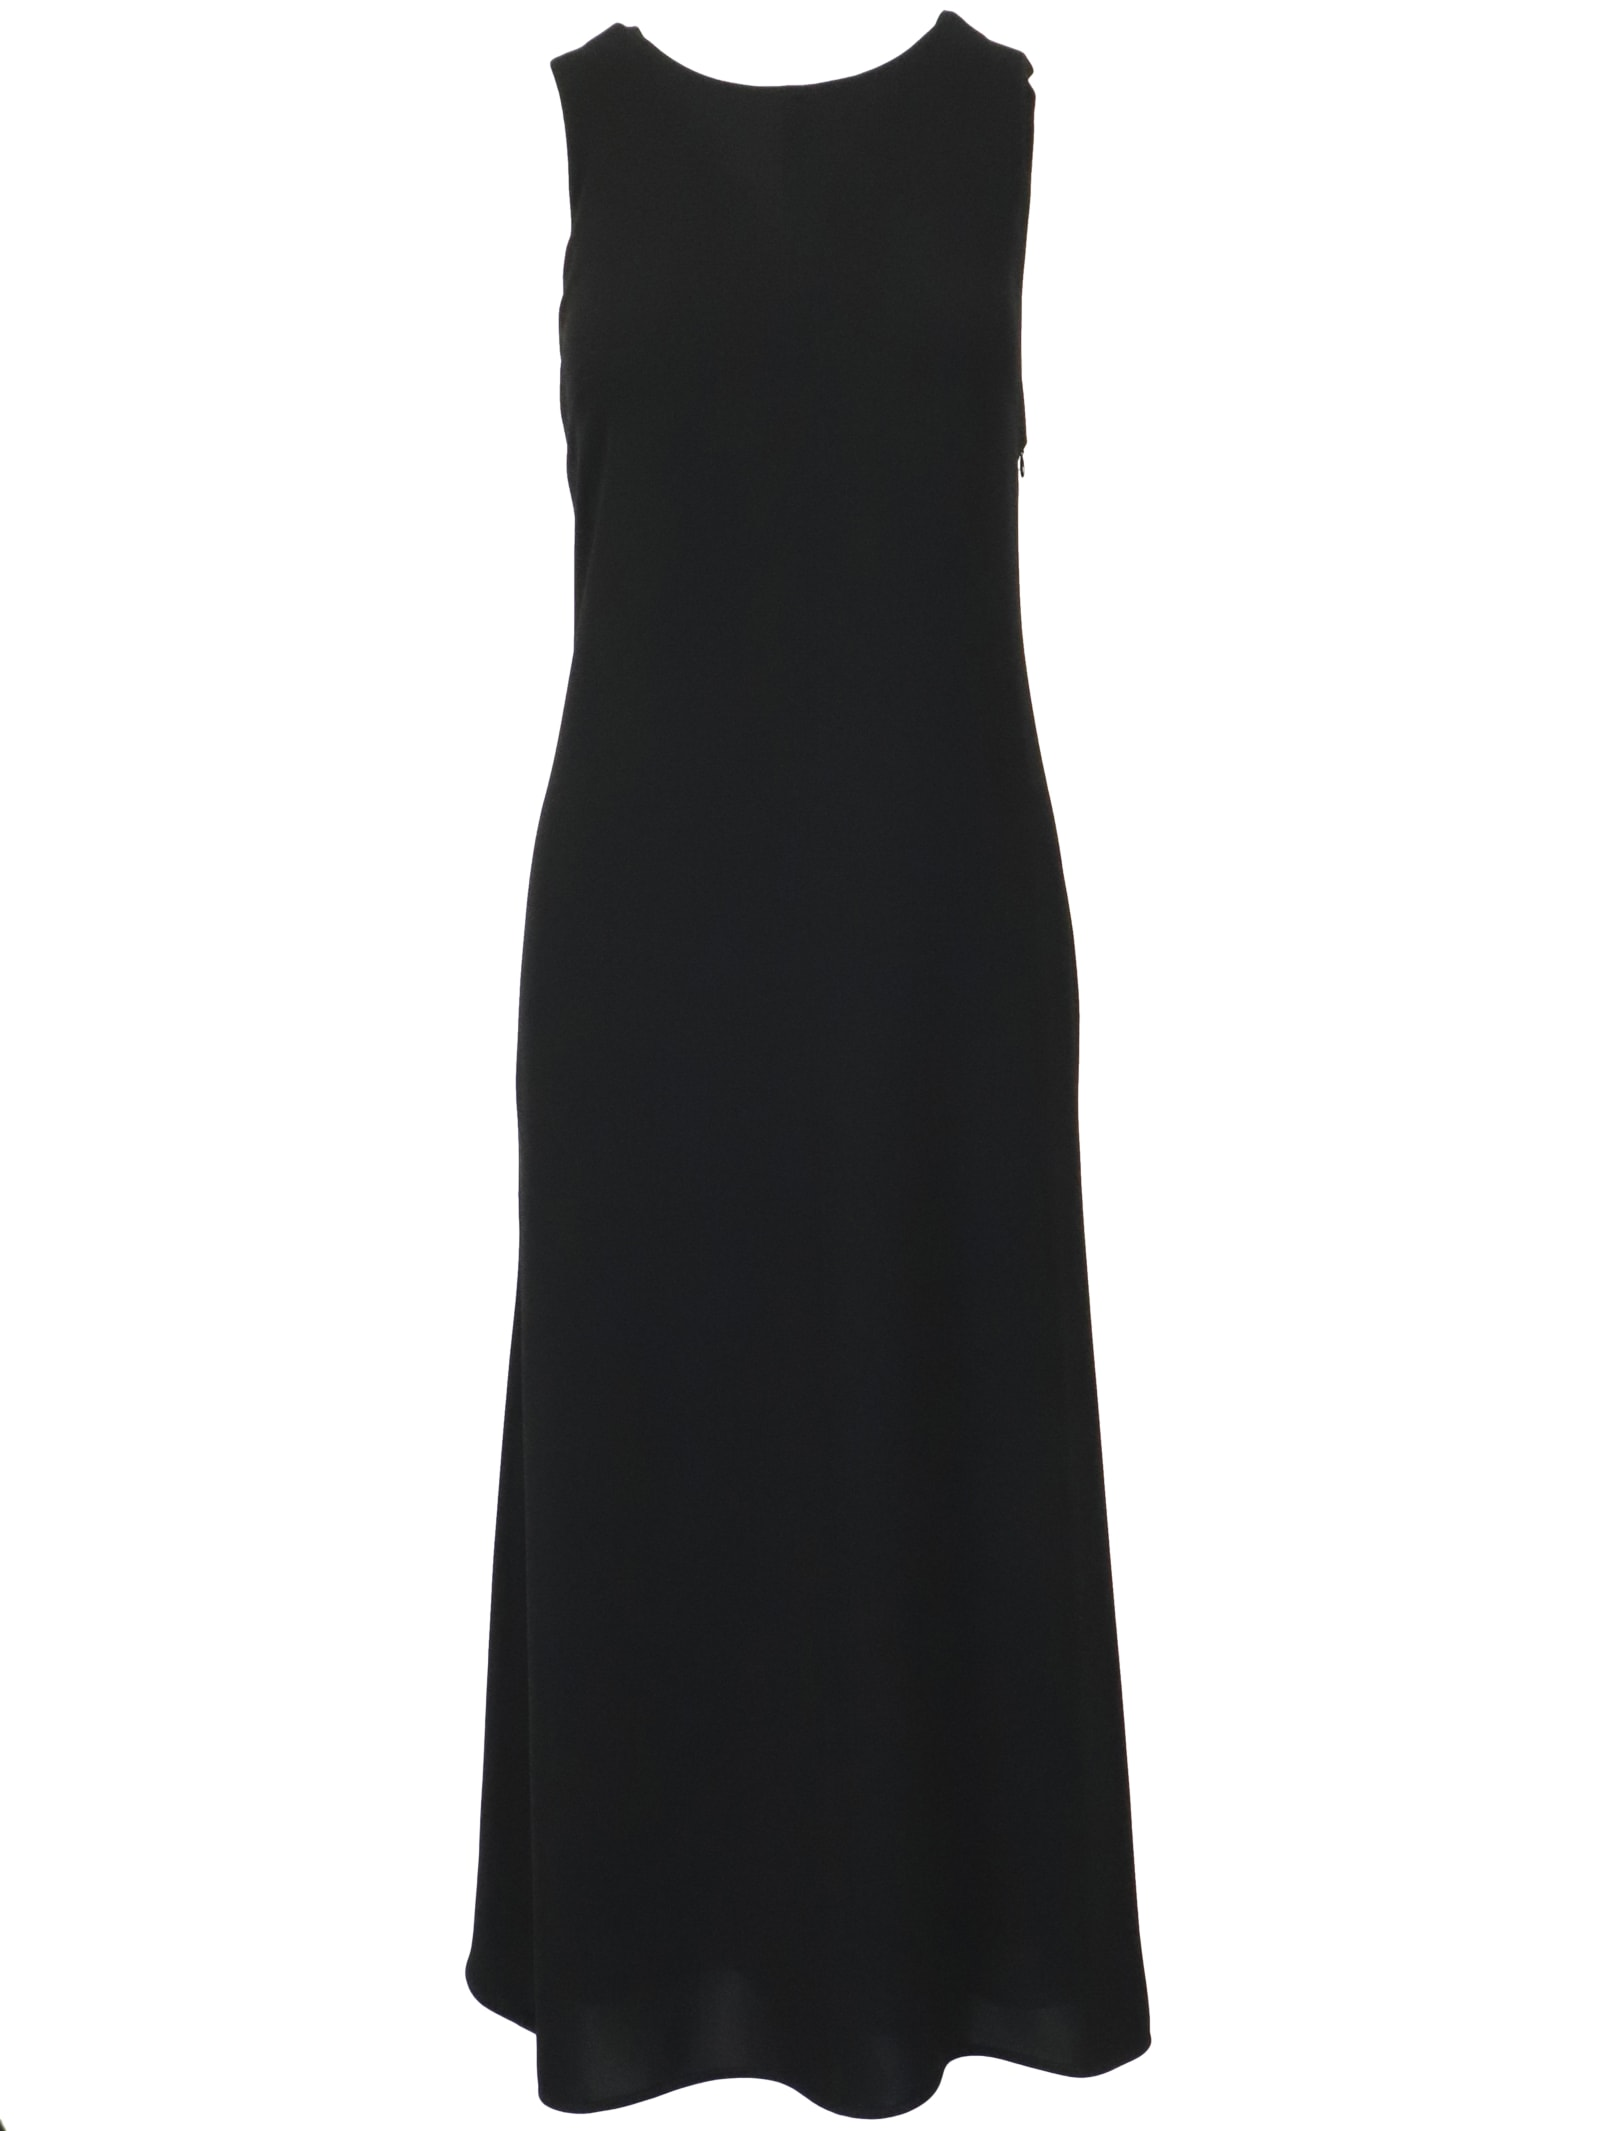 Max Mara Studio Nocera Dress